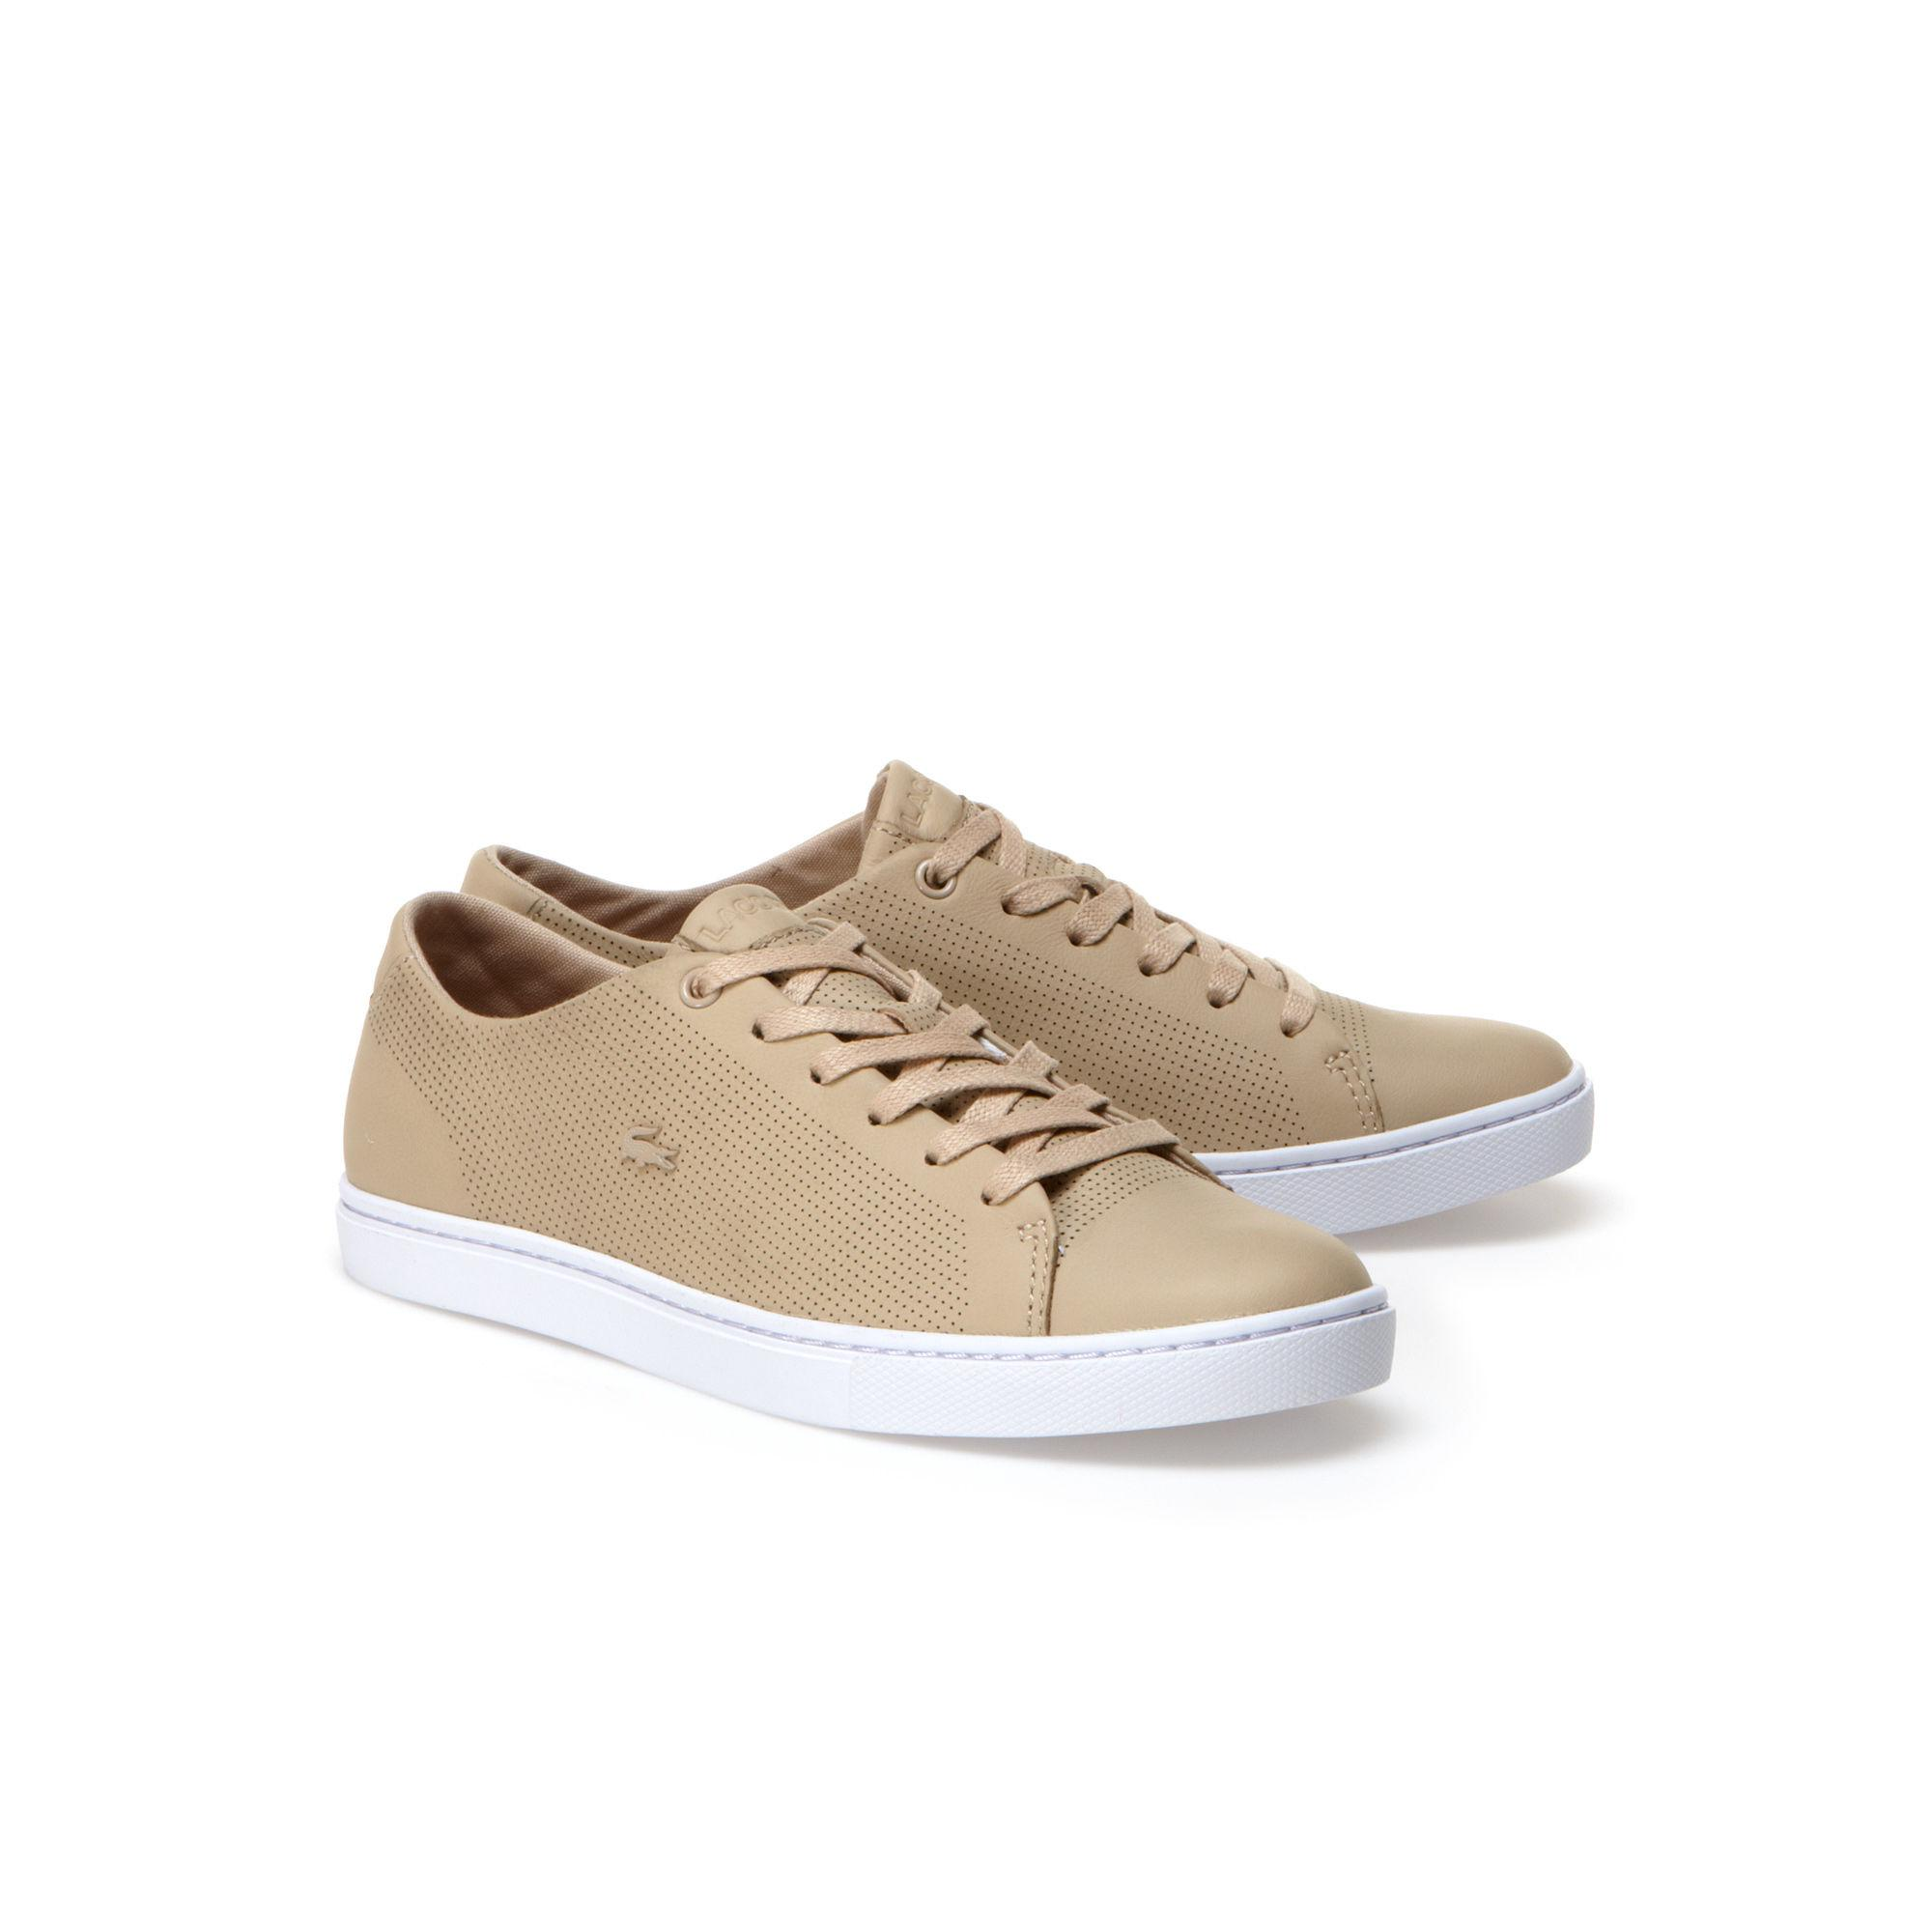 6d880d2589d91c Lacoste - Natural Showcourt Leather Sneakers - Lyst. View fullscreen